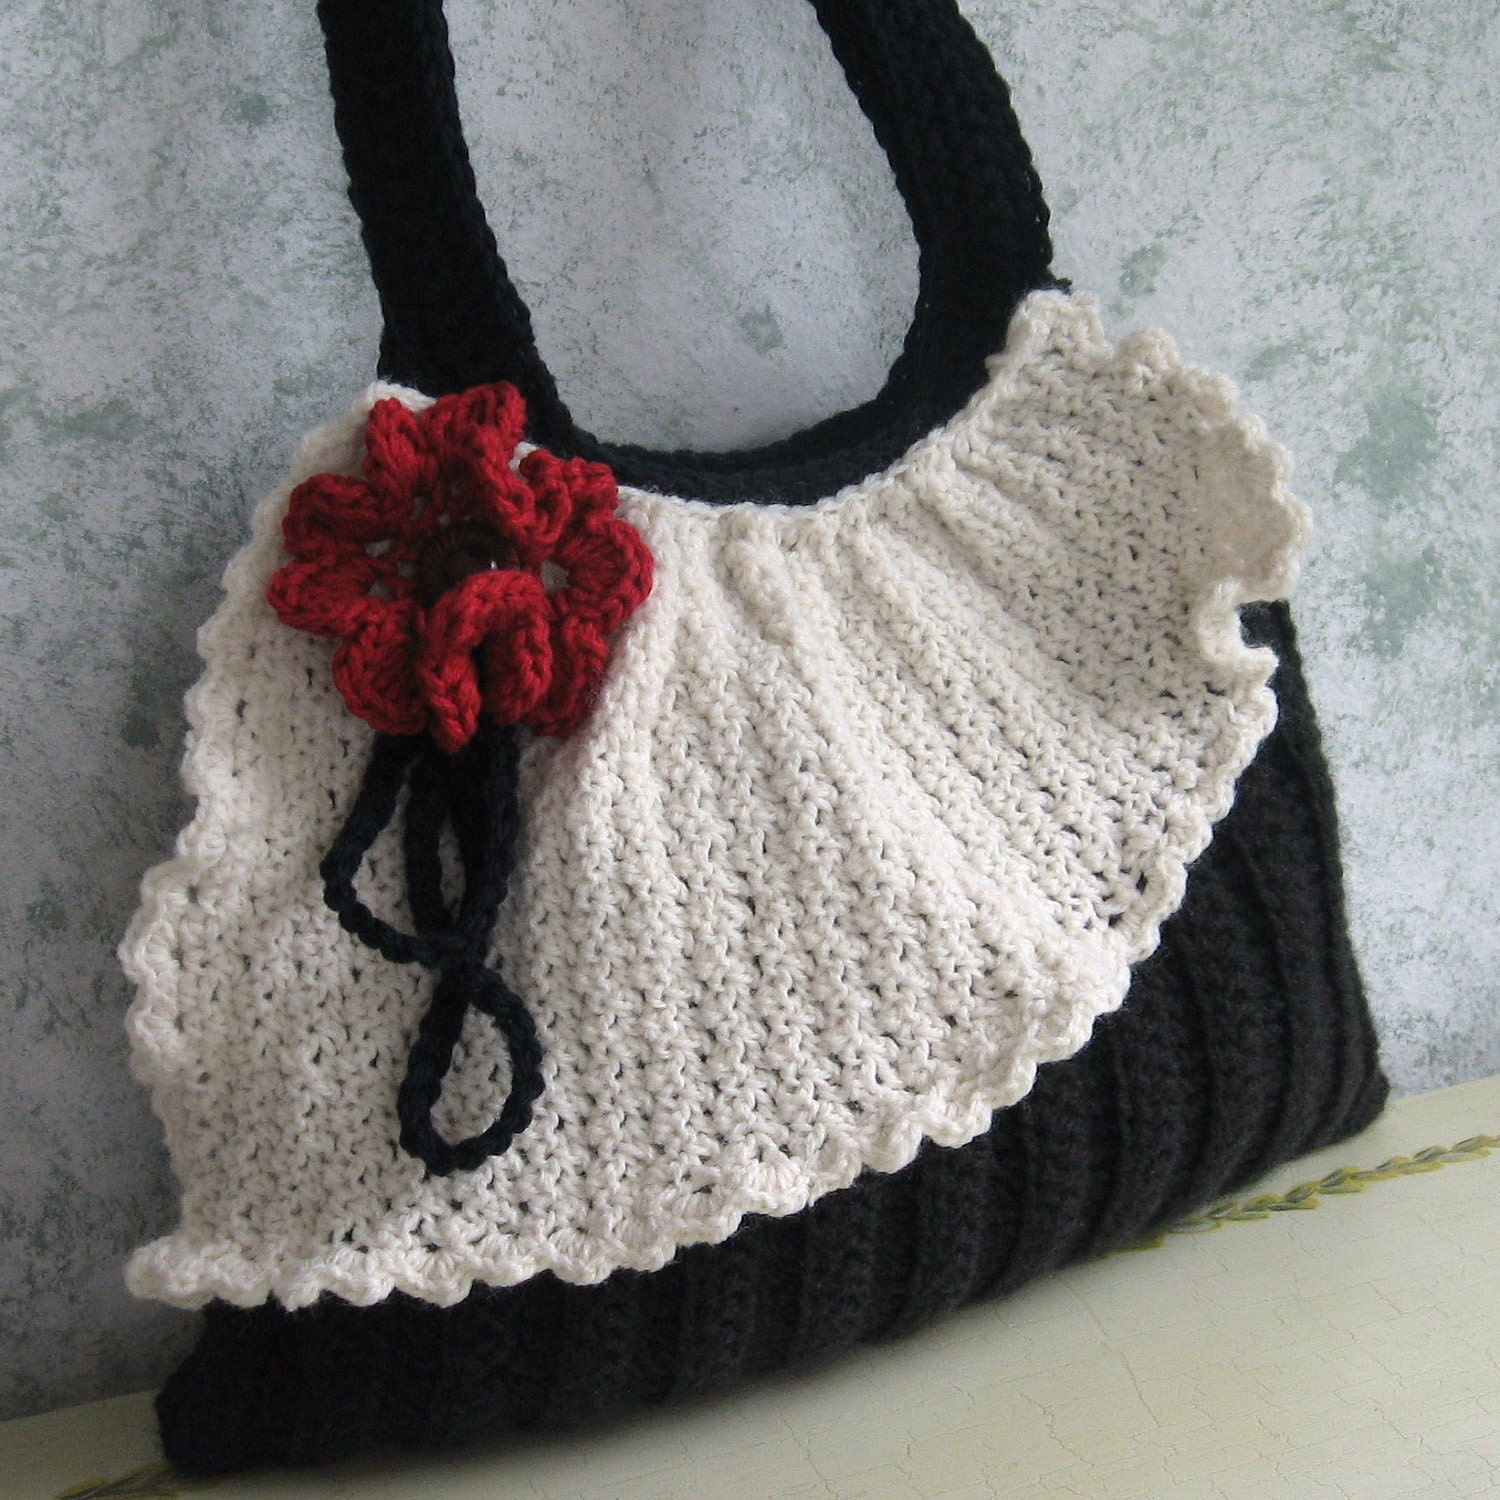 Crochet Backpack Bag Pattern : Crochet Purse Pattern Pleated Bag With Drape And by kalliedesigns